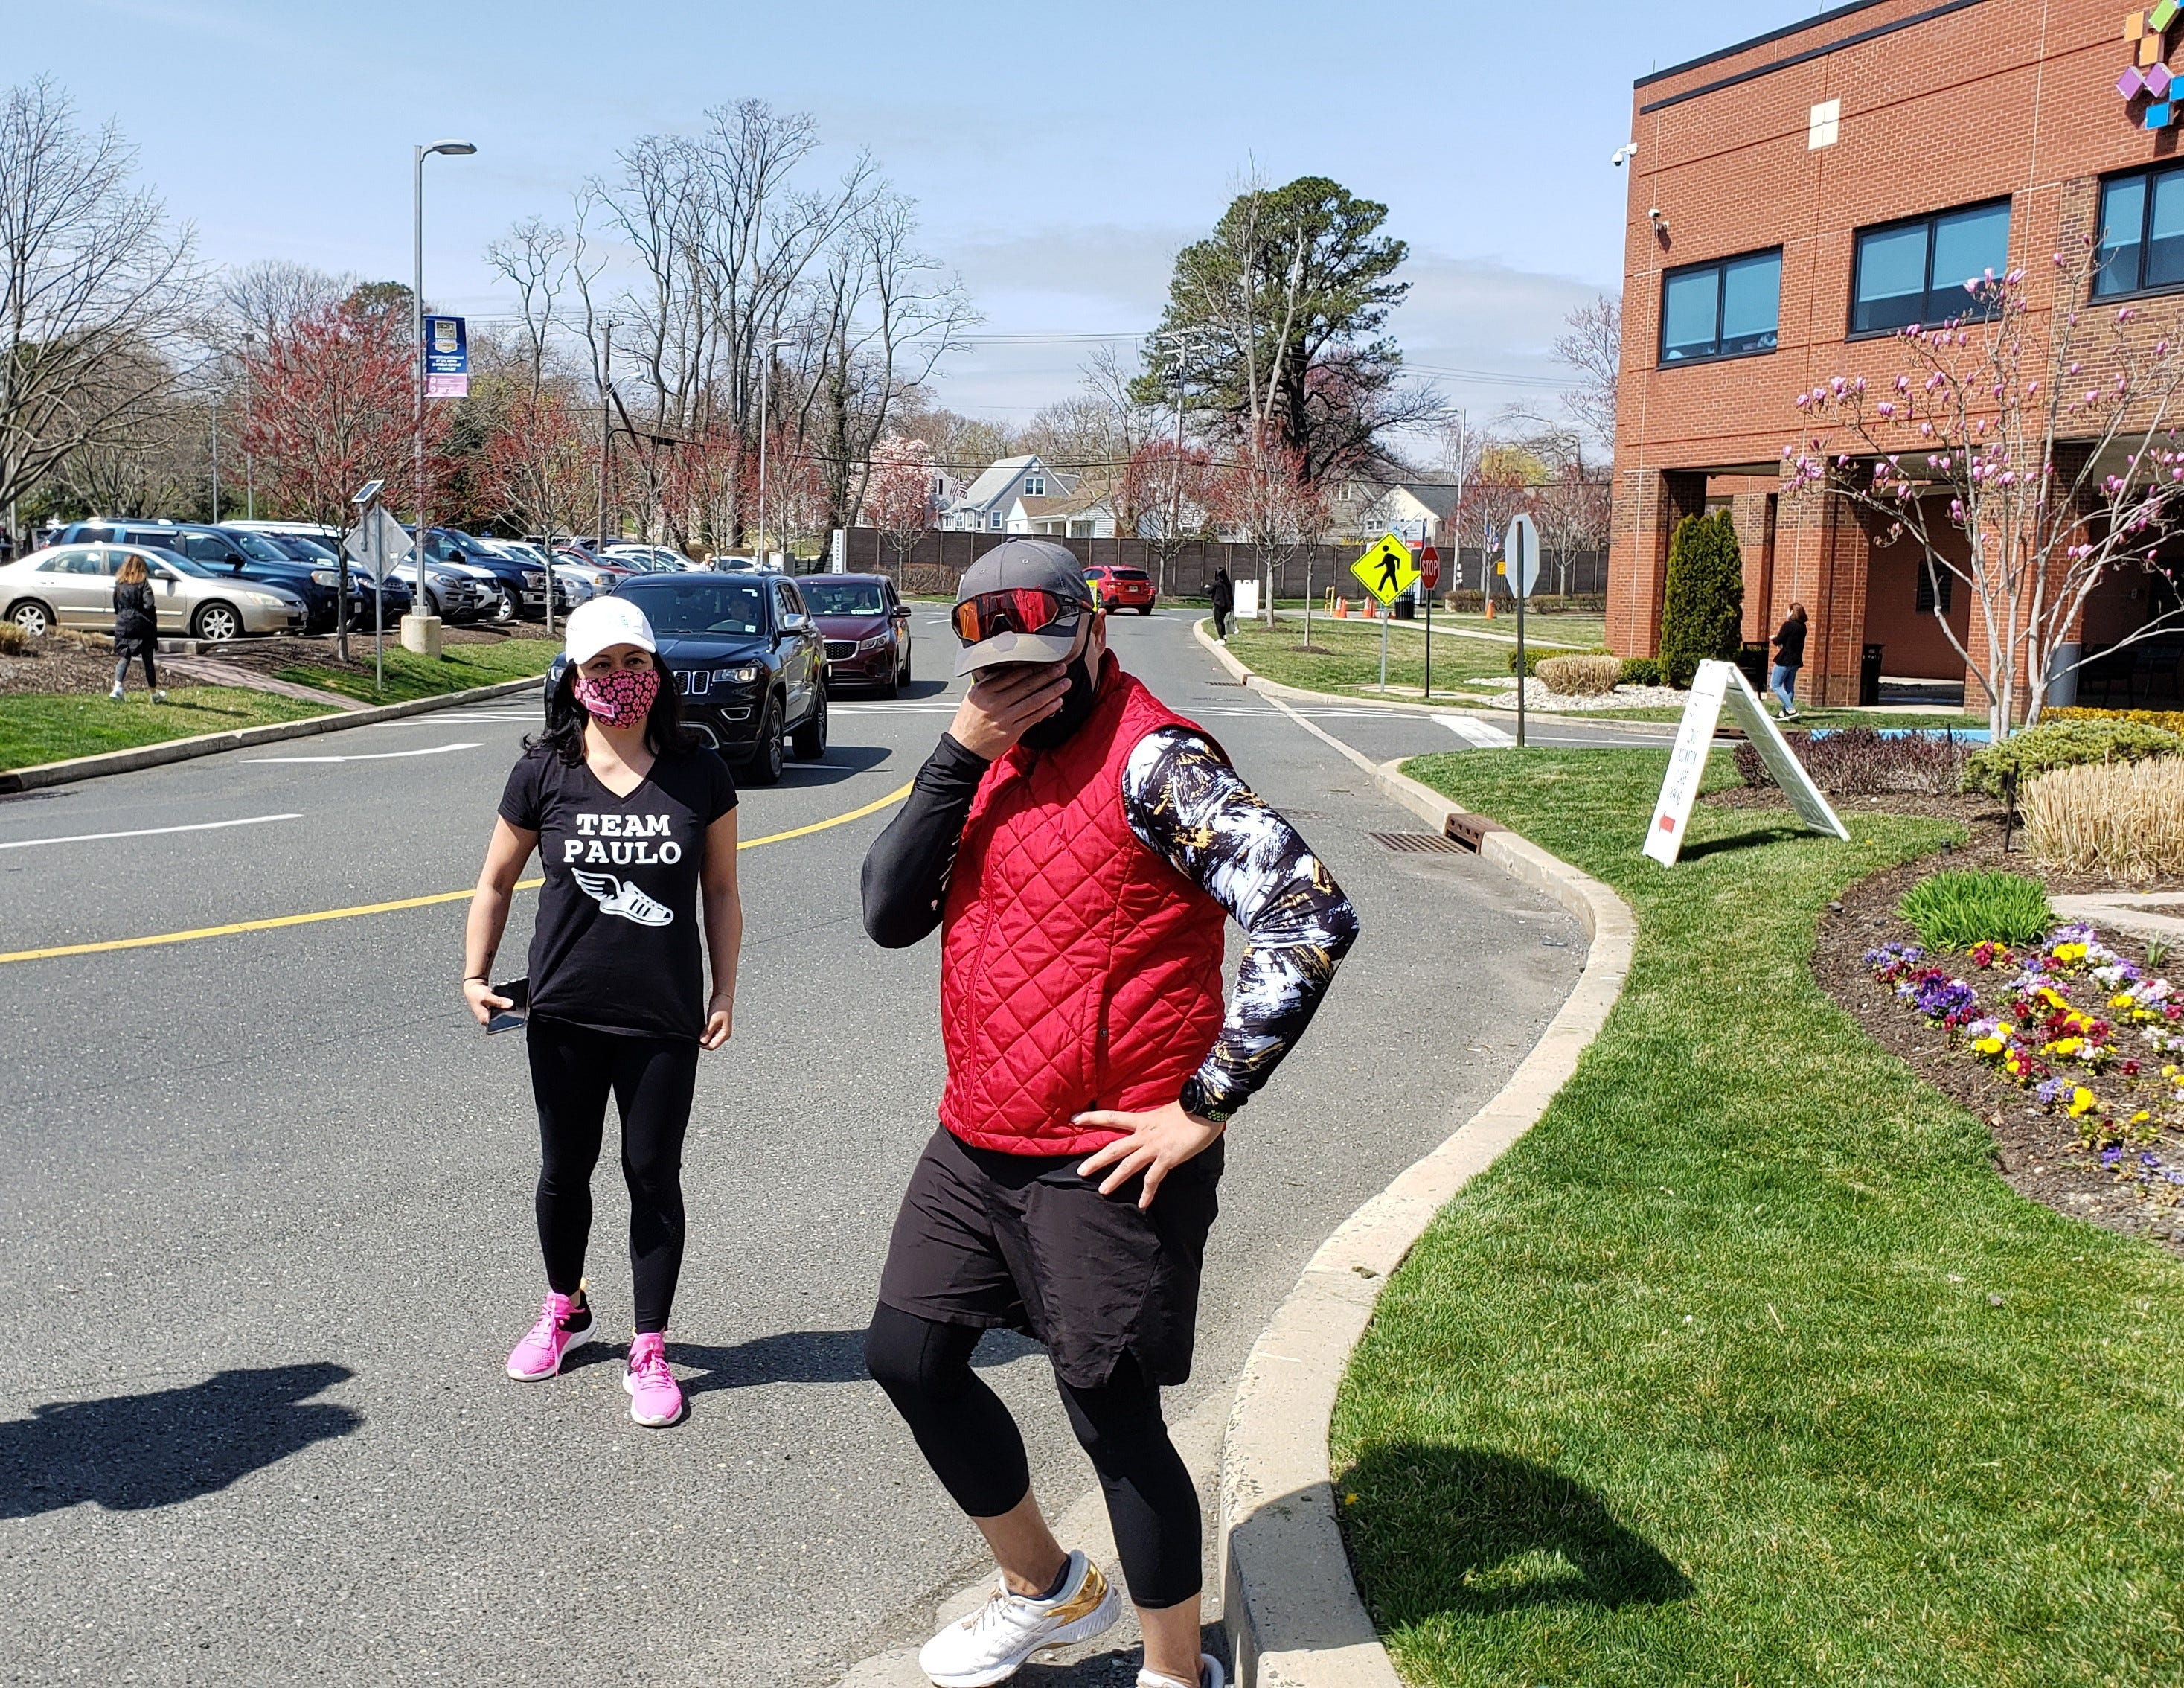 Watch: 1 year after near-death from COVID, Manalapan man runs 20 miles